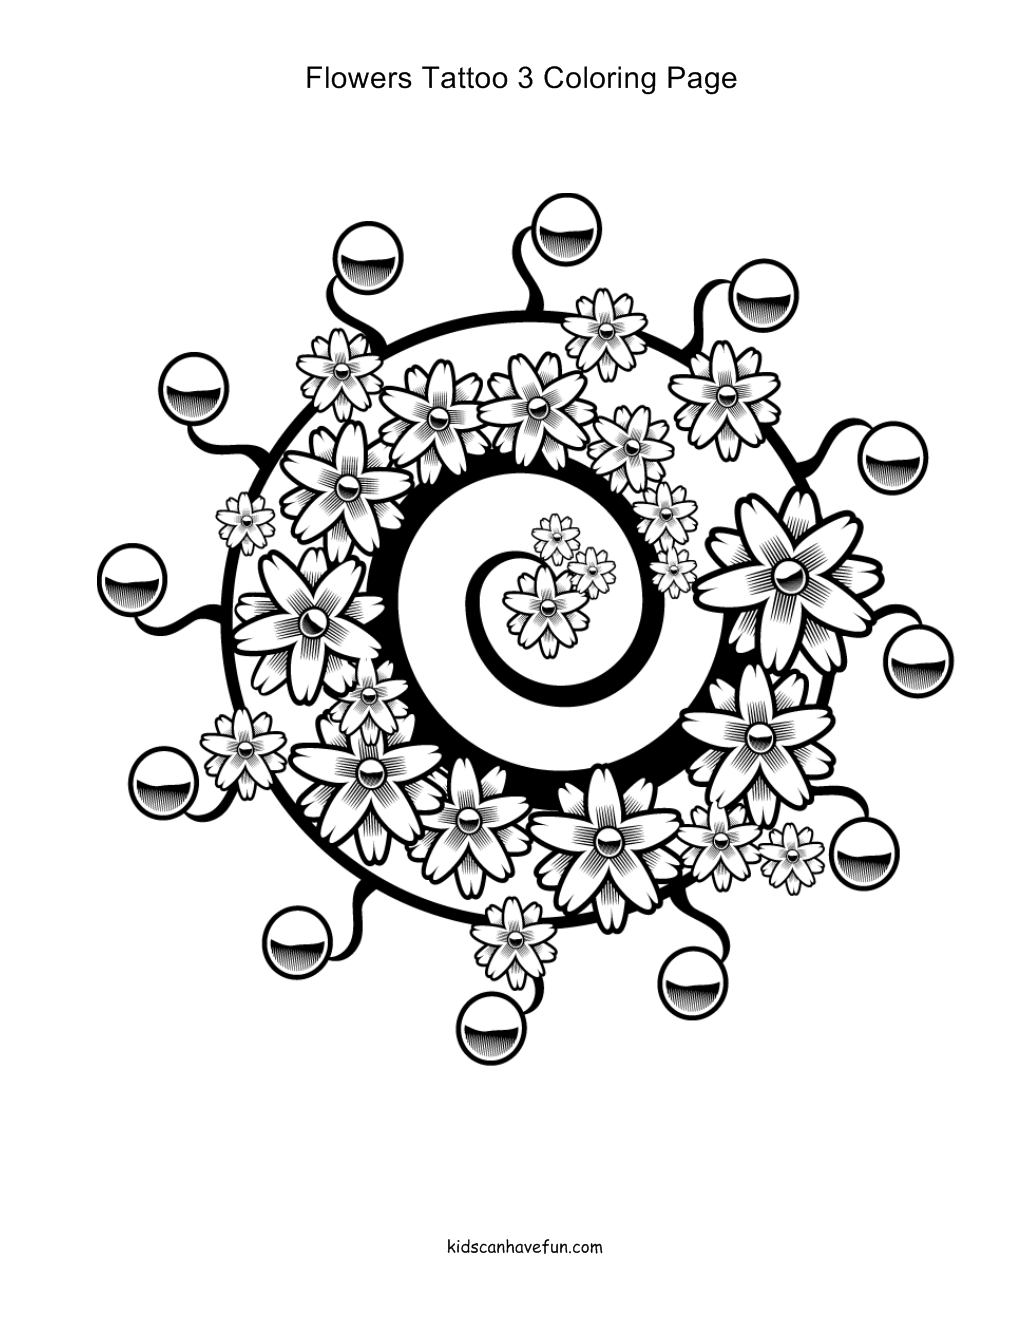 swirly flowers and leaves tattoo coloring pages tattoomagz